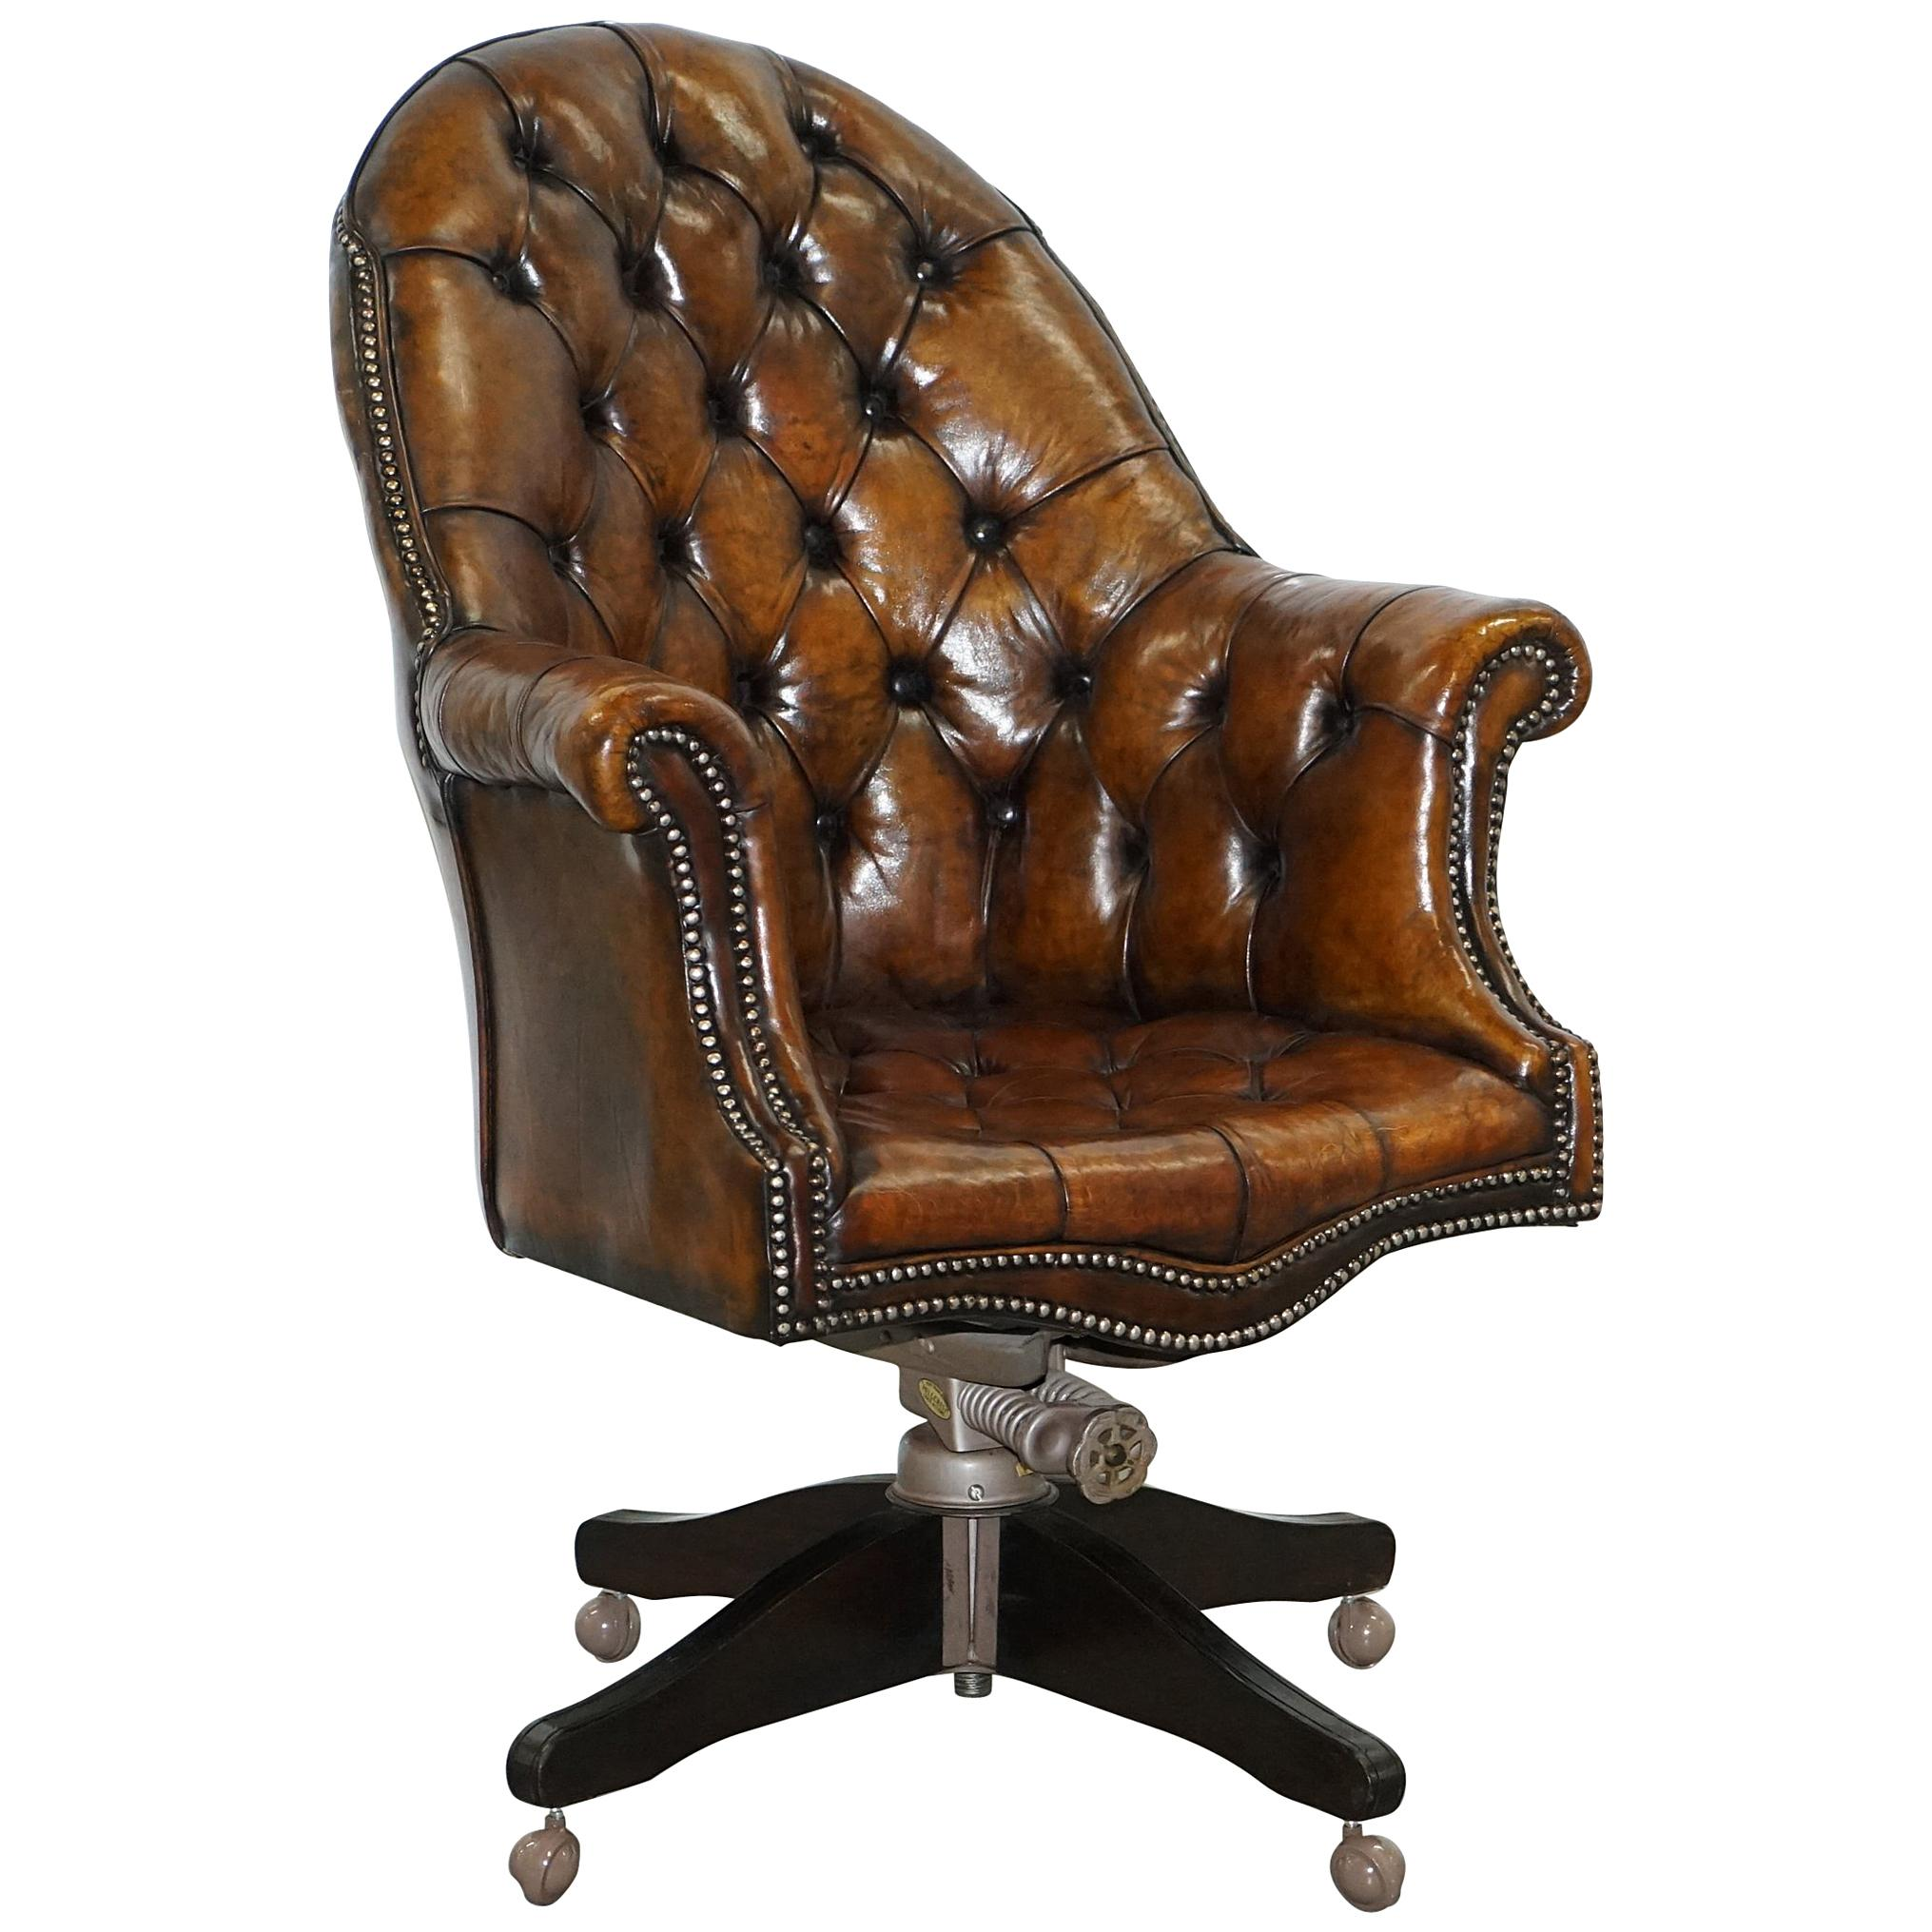 Restored 1920s Hillcrest Chesterfield Brown Leather Directors Captains Chair  A1 For Sale at 1stdibs